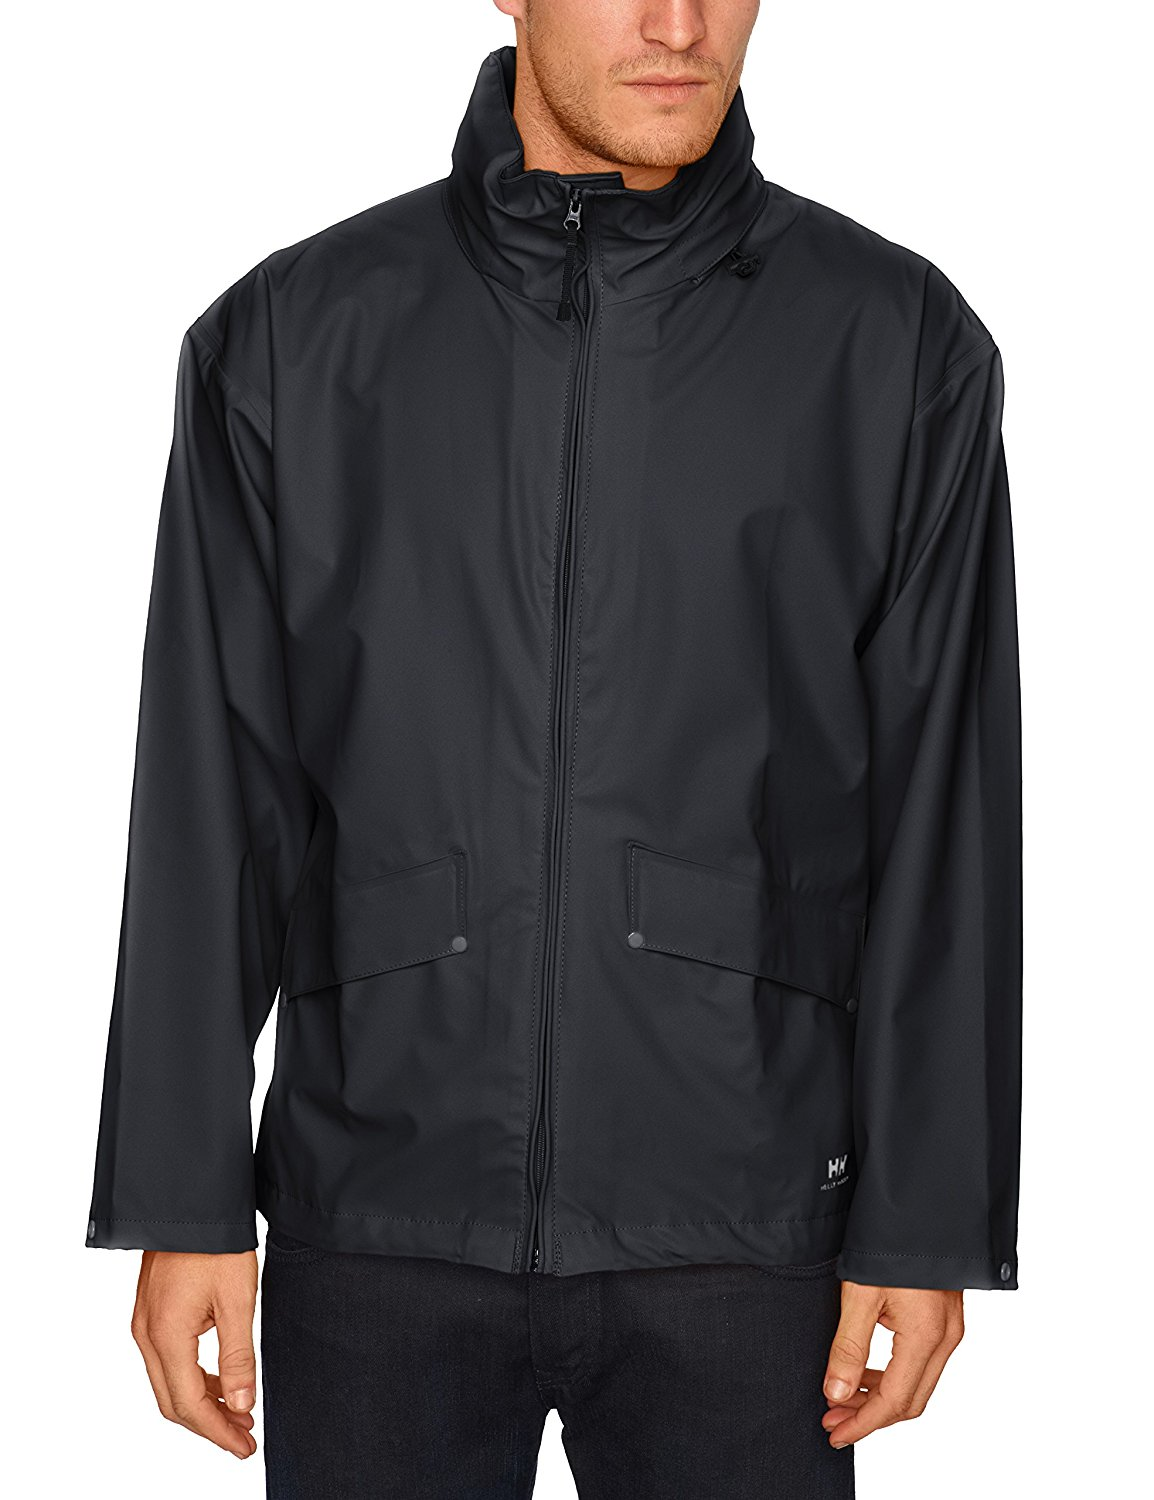 Helly Hansen Men's Voss Windproof Waterproof Rain Coat Jacket with Stowable Hood